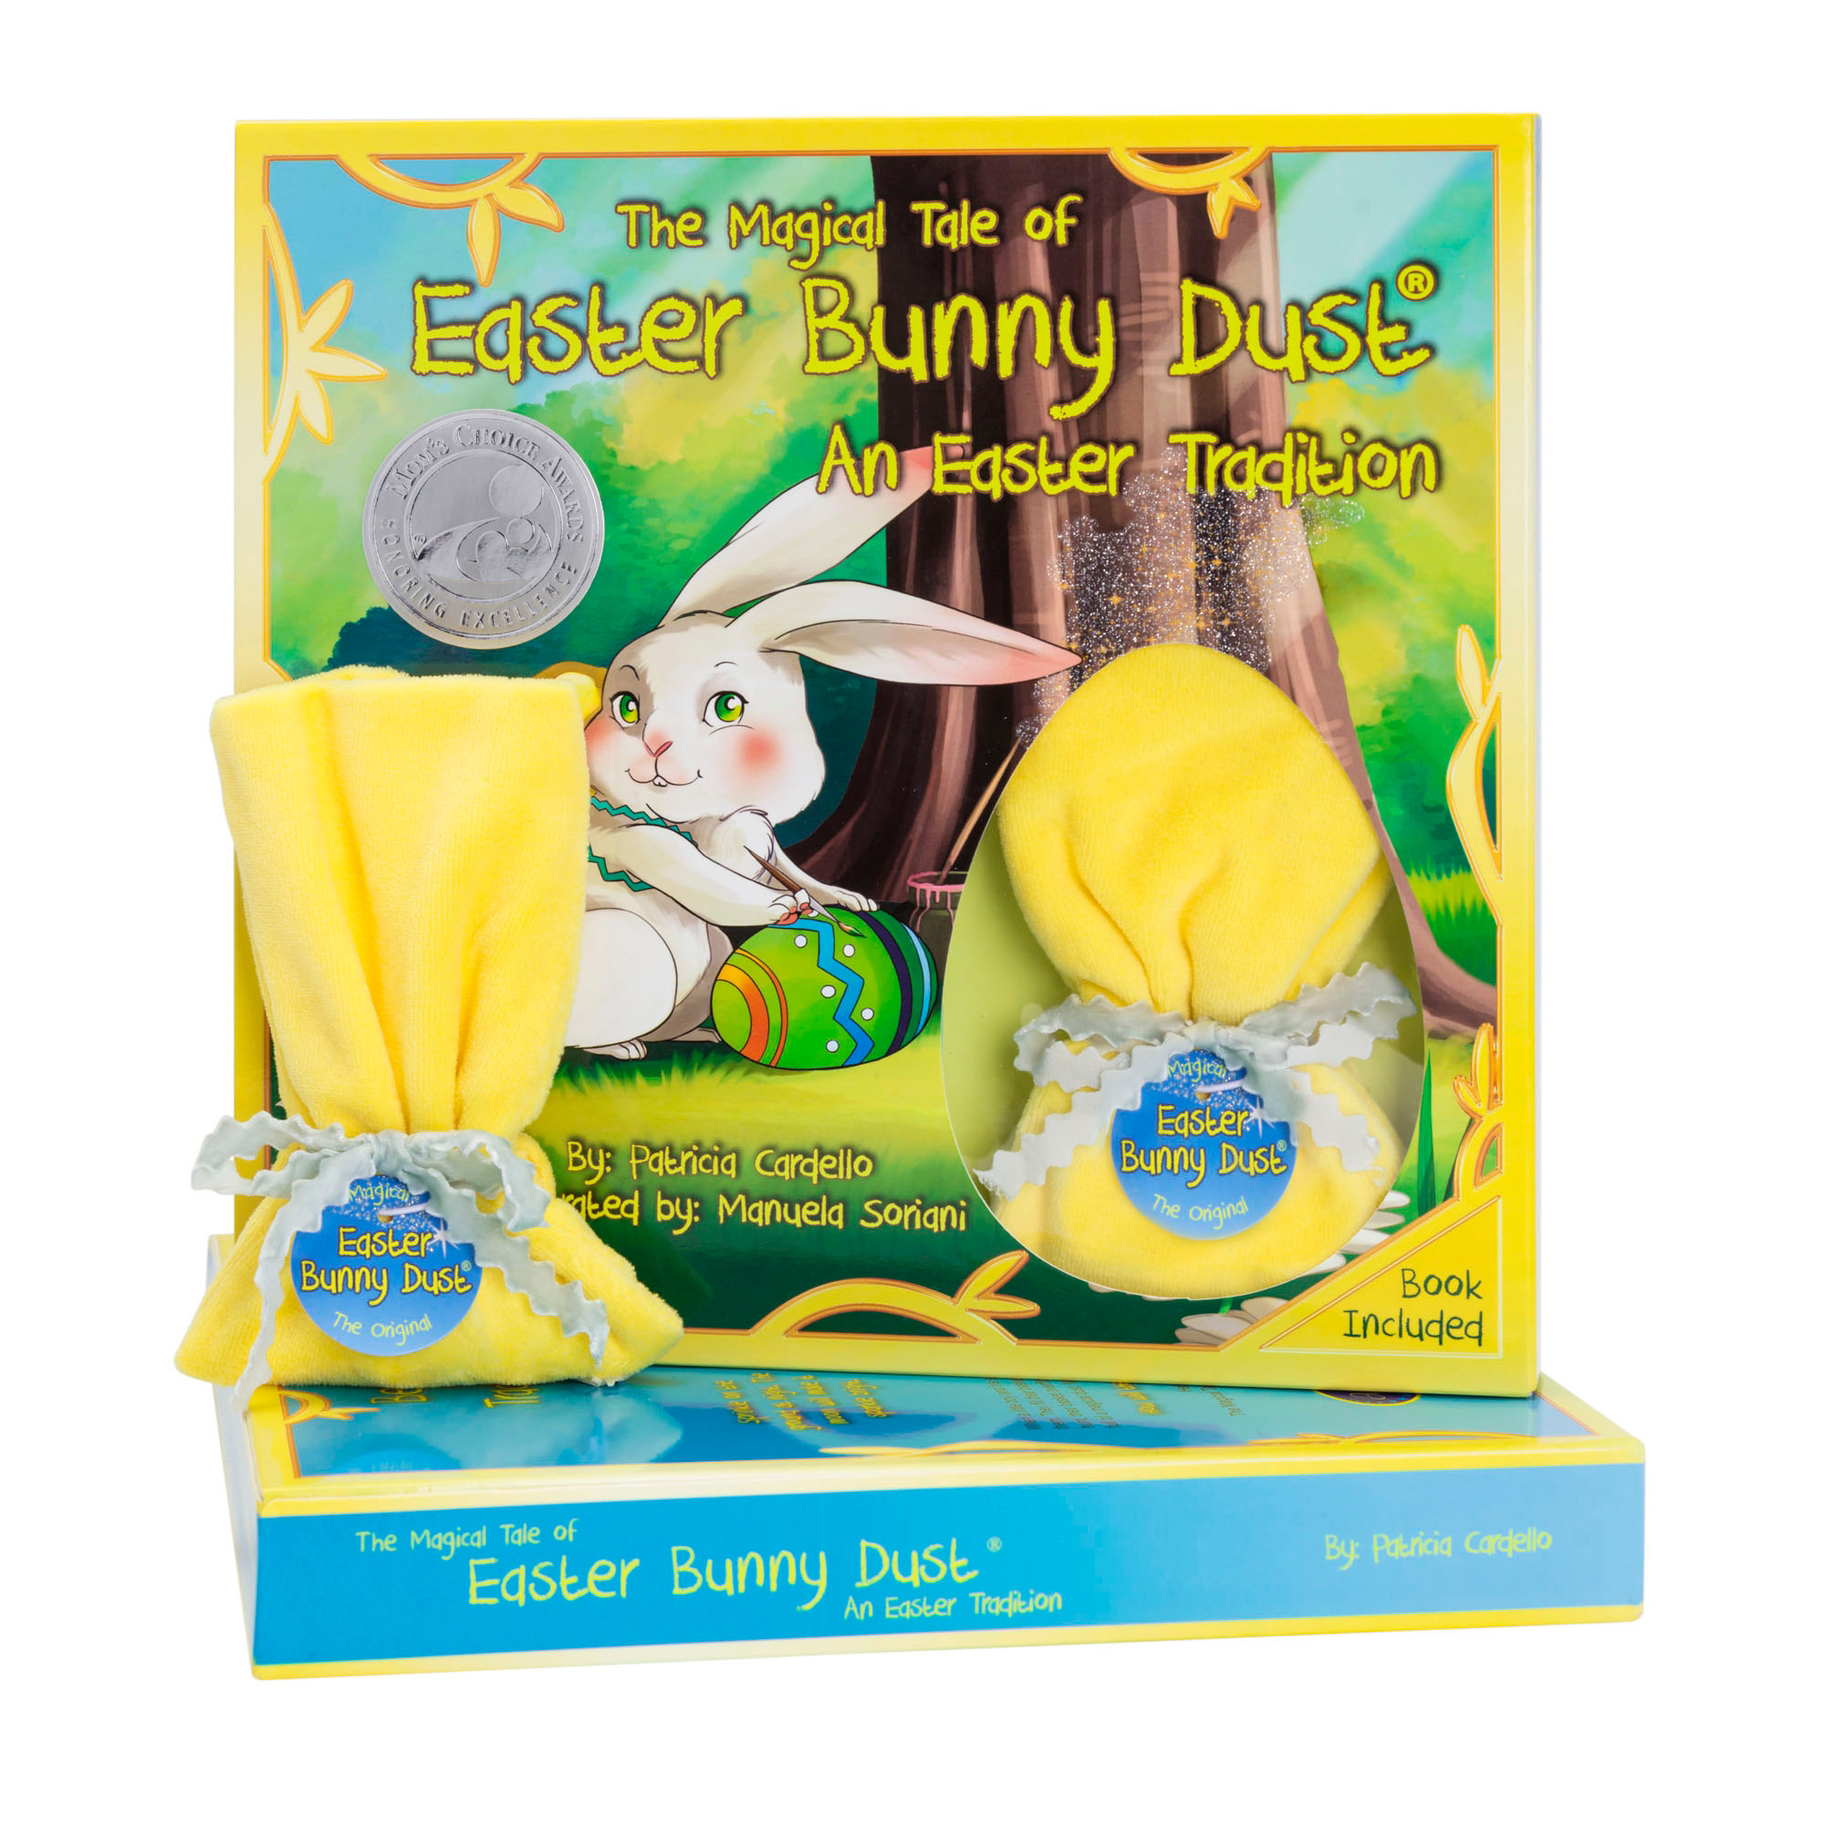 The Magical Tale of Easter Bunny Dust - An Easter Tradition